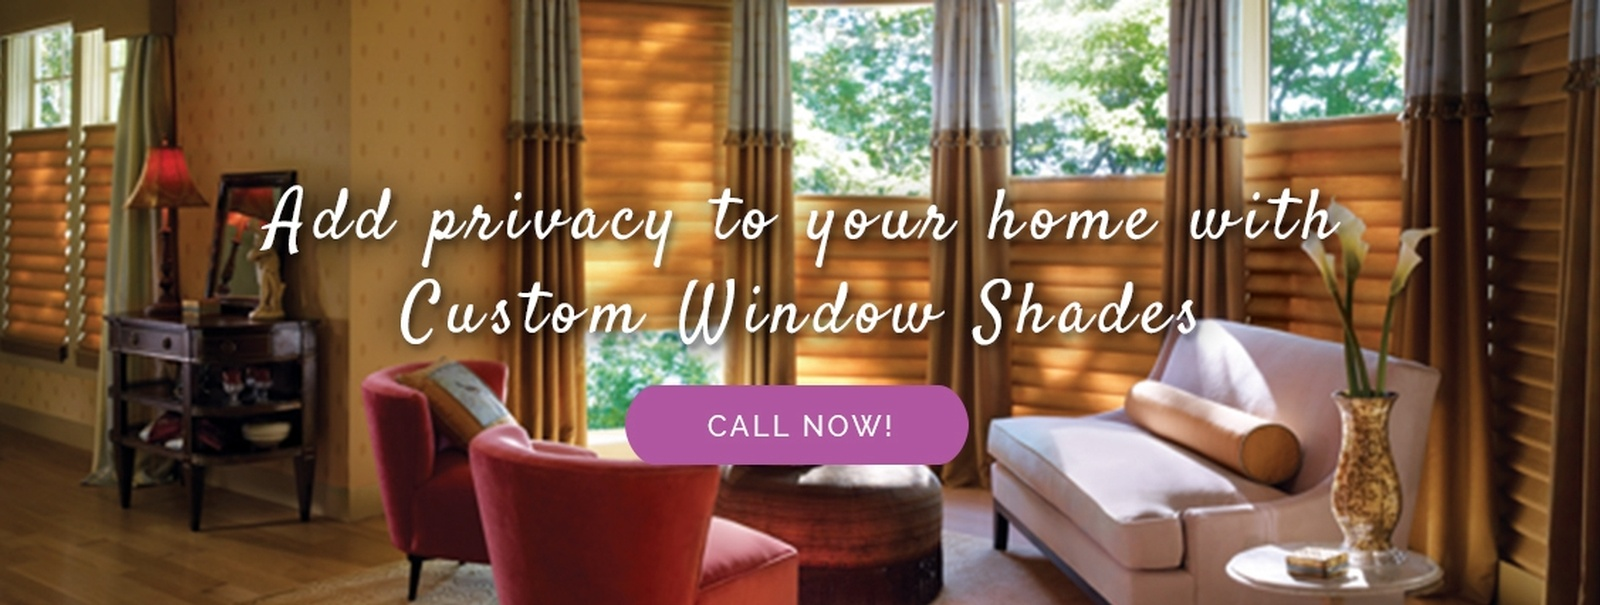 Add Privacy to your Home with Custom Window Shades - Sensational Seams